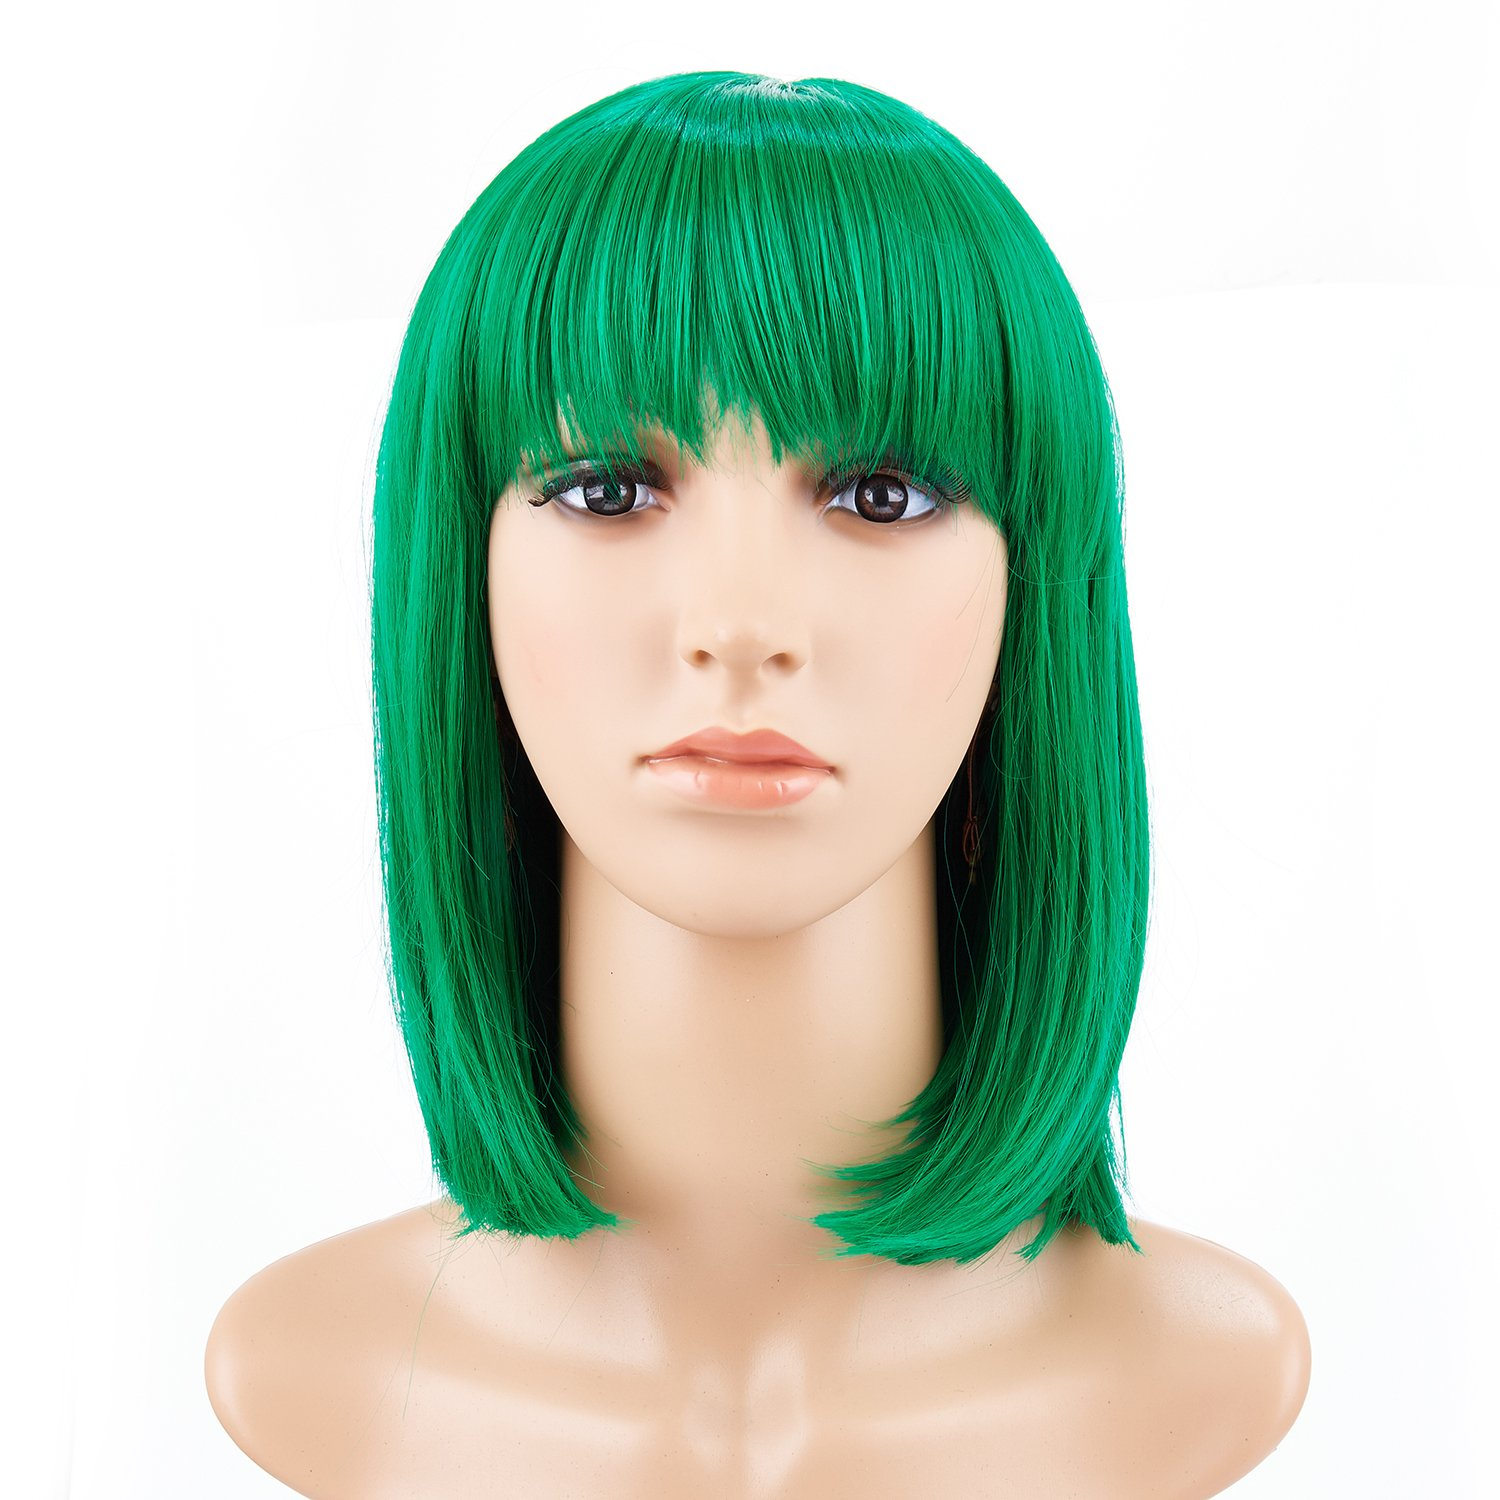 BeliHair 14'' Green Short Straight Bob Wigs with Bangs for Women Girls Synthetic Costume Hair Wig for Cosplay party(Like Hero Polaris in The Gifted)+Free Wig Cap